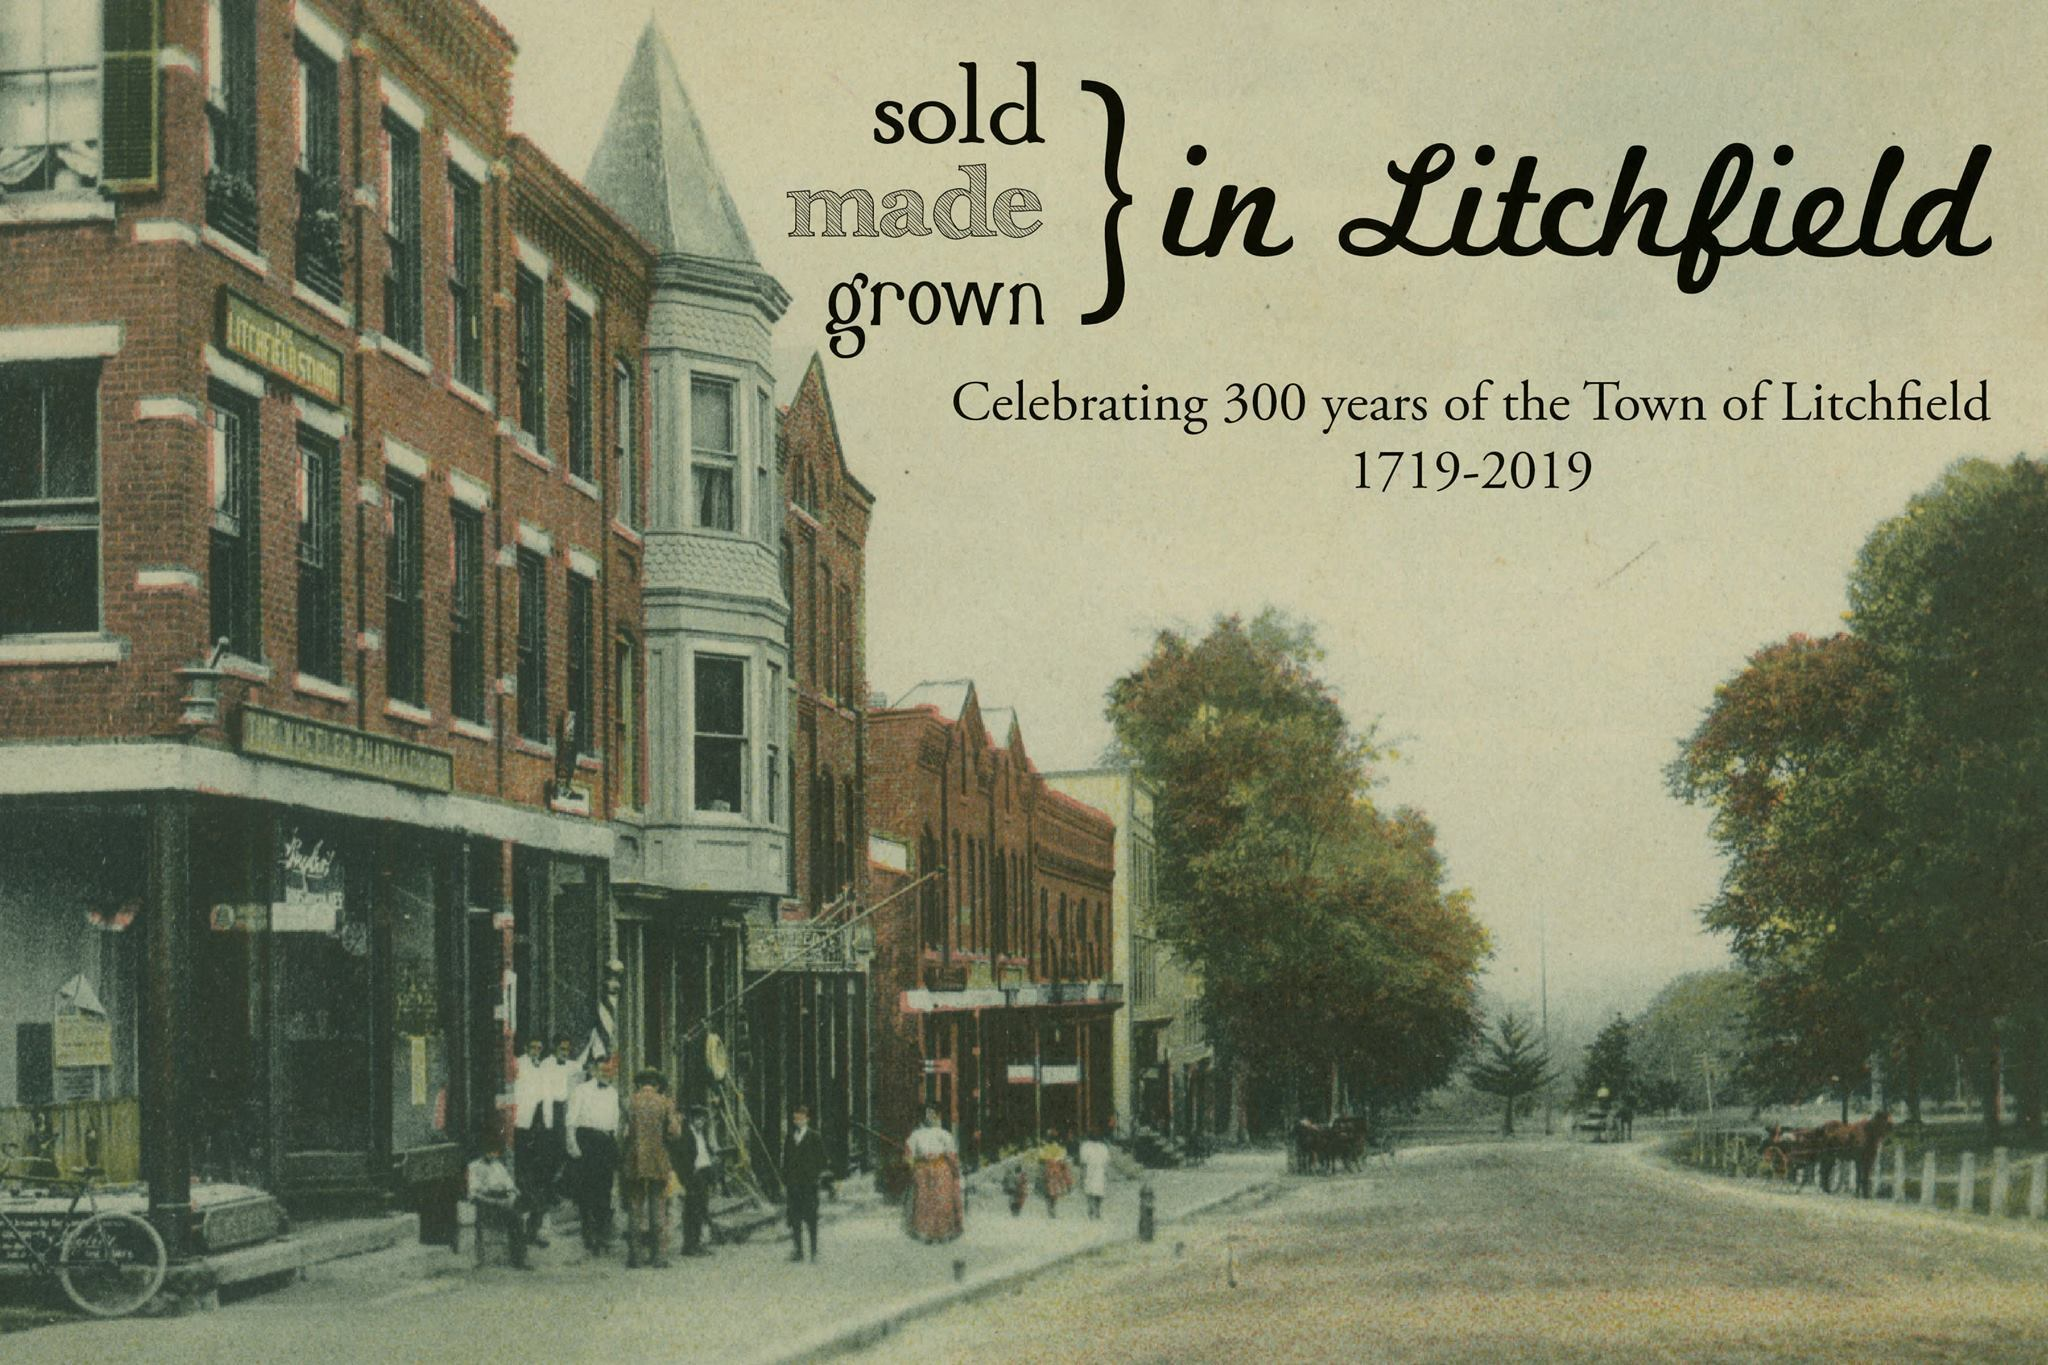 Sold, Made, and Grown in Litchfield